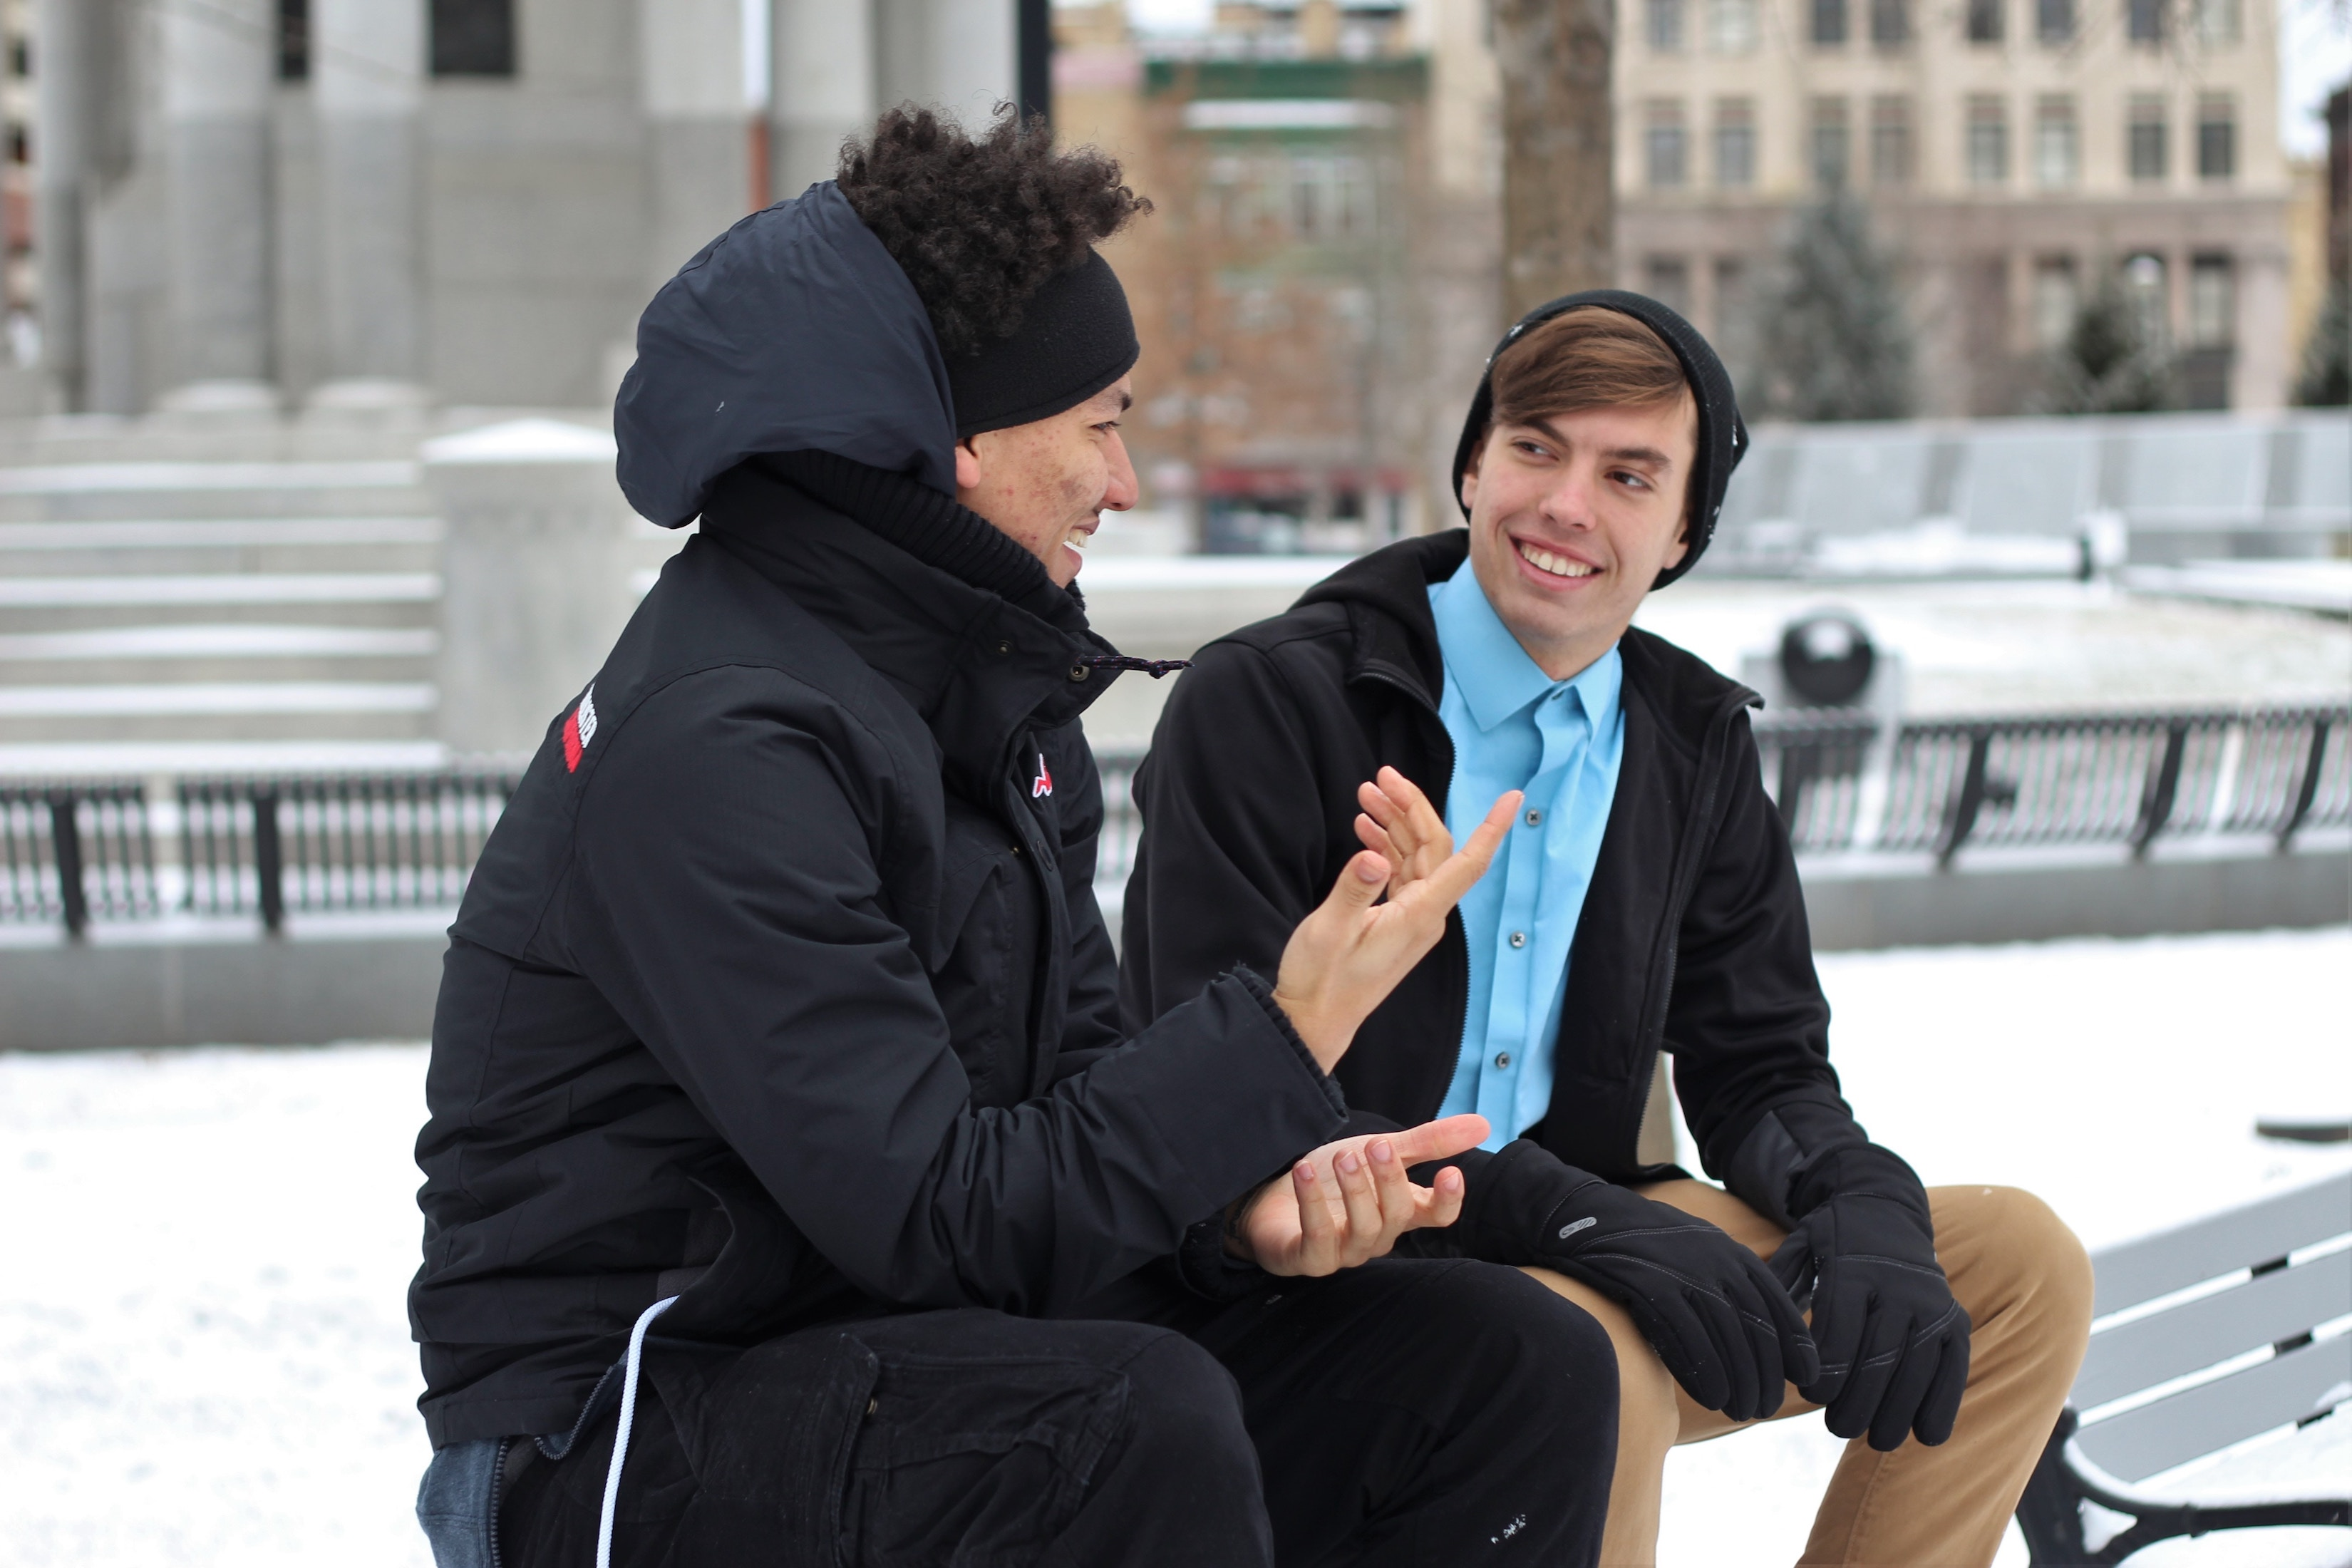 Two guys sitting on a park bench in the snow having a conversation.